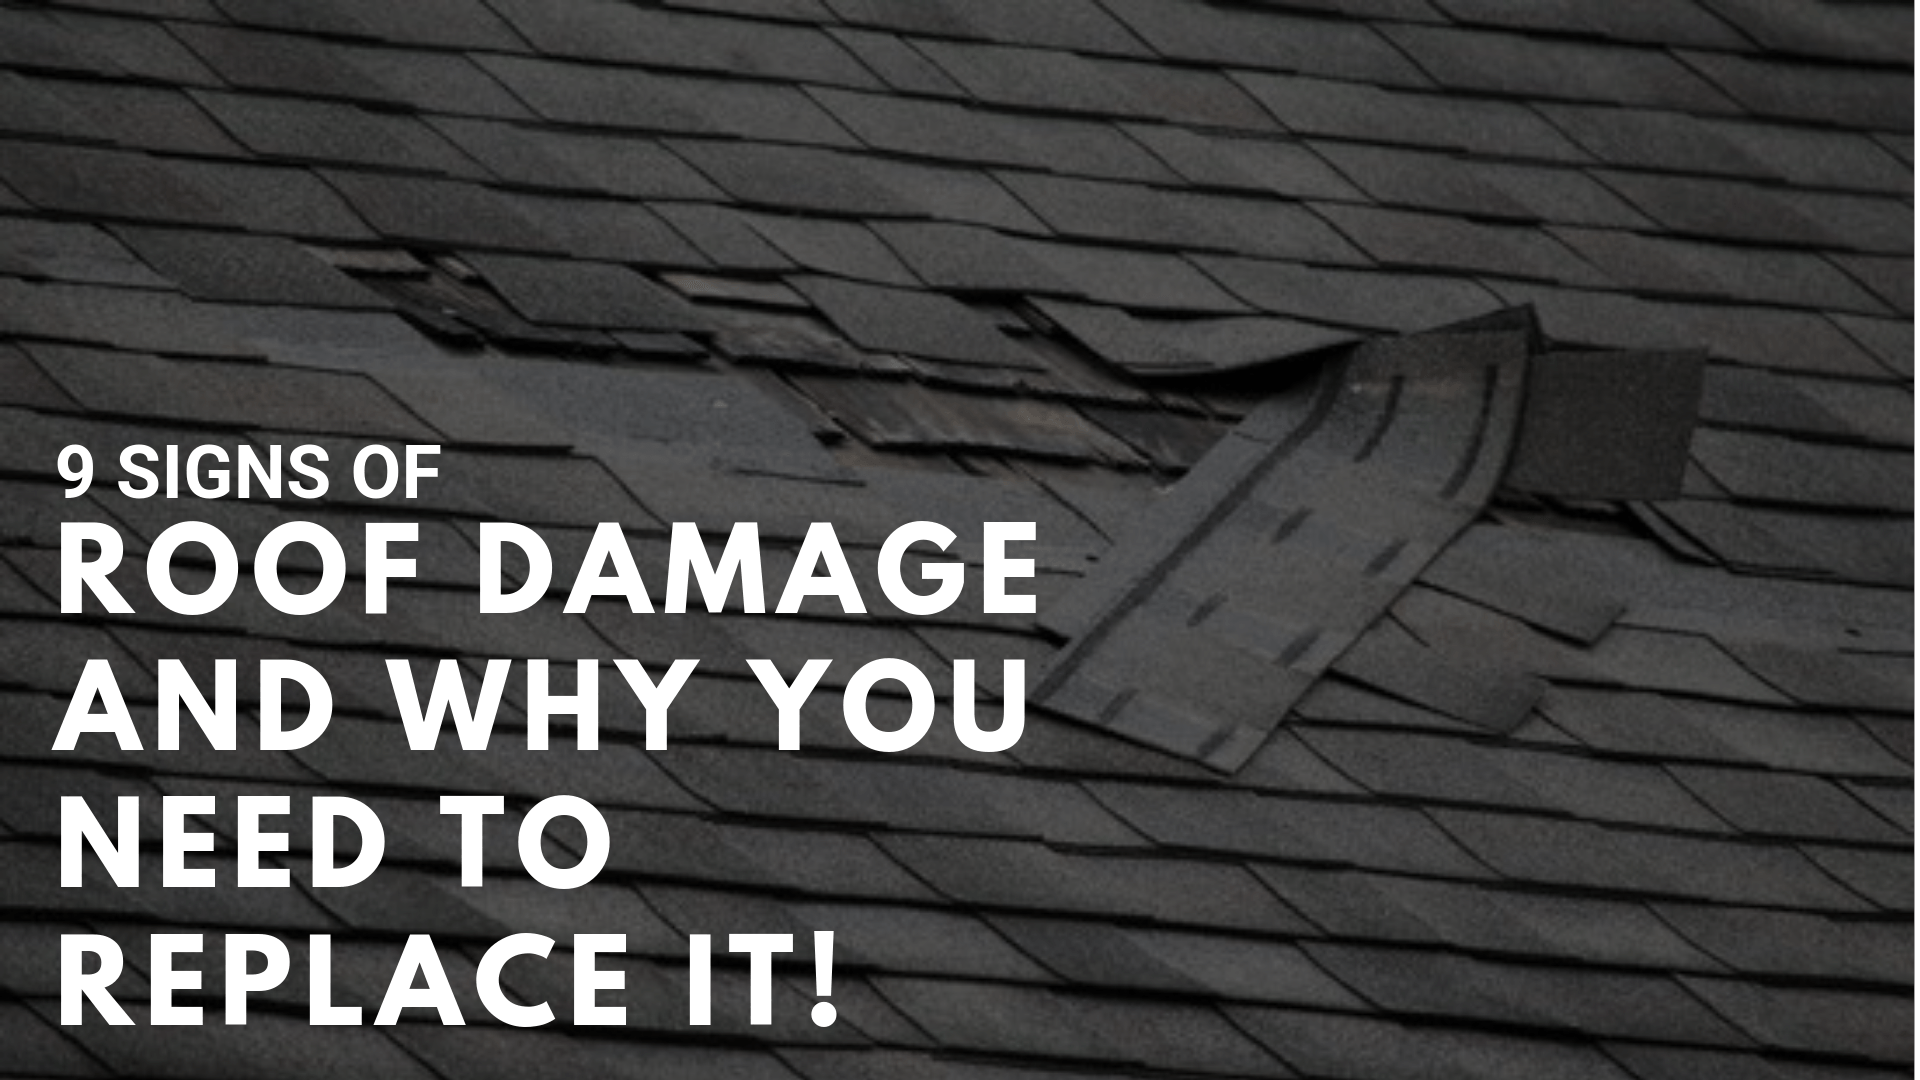 9 Signs Of Roof Damage And Why You Need To Replace It